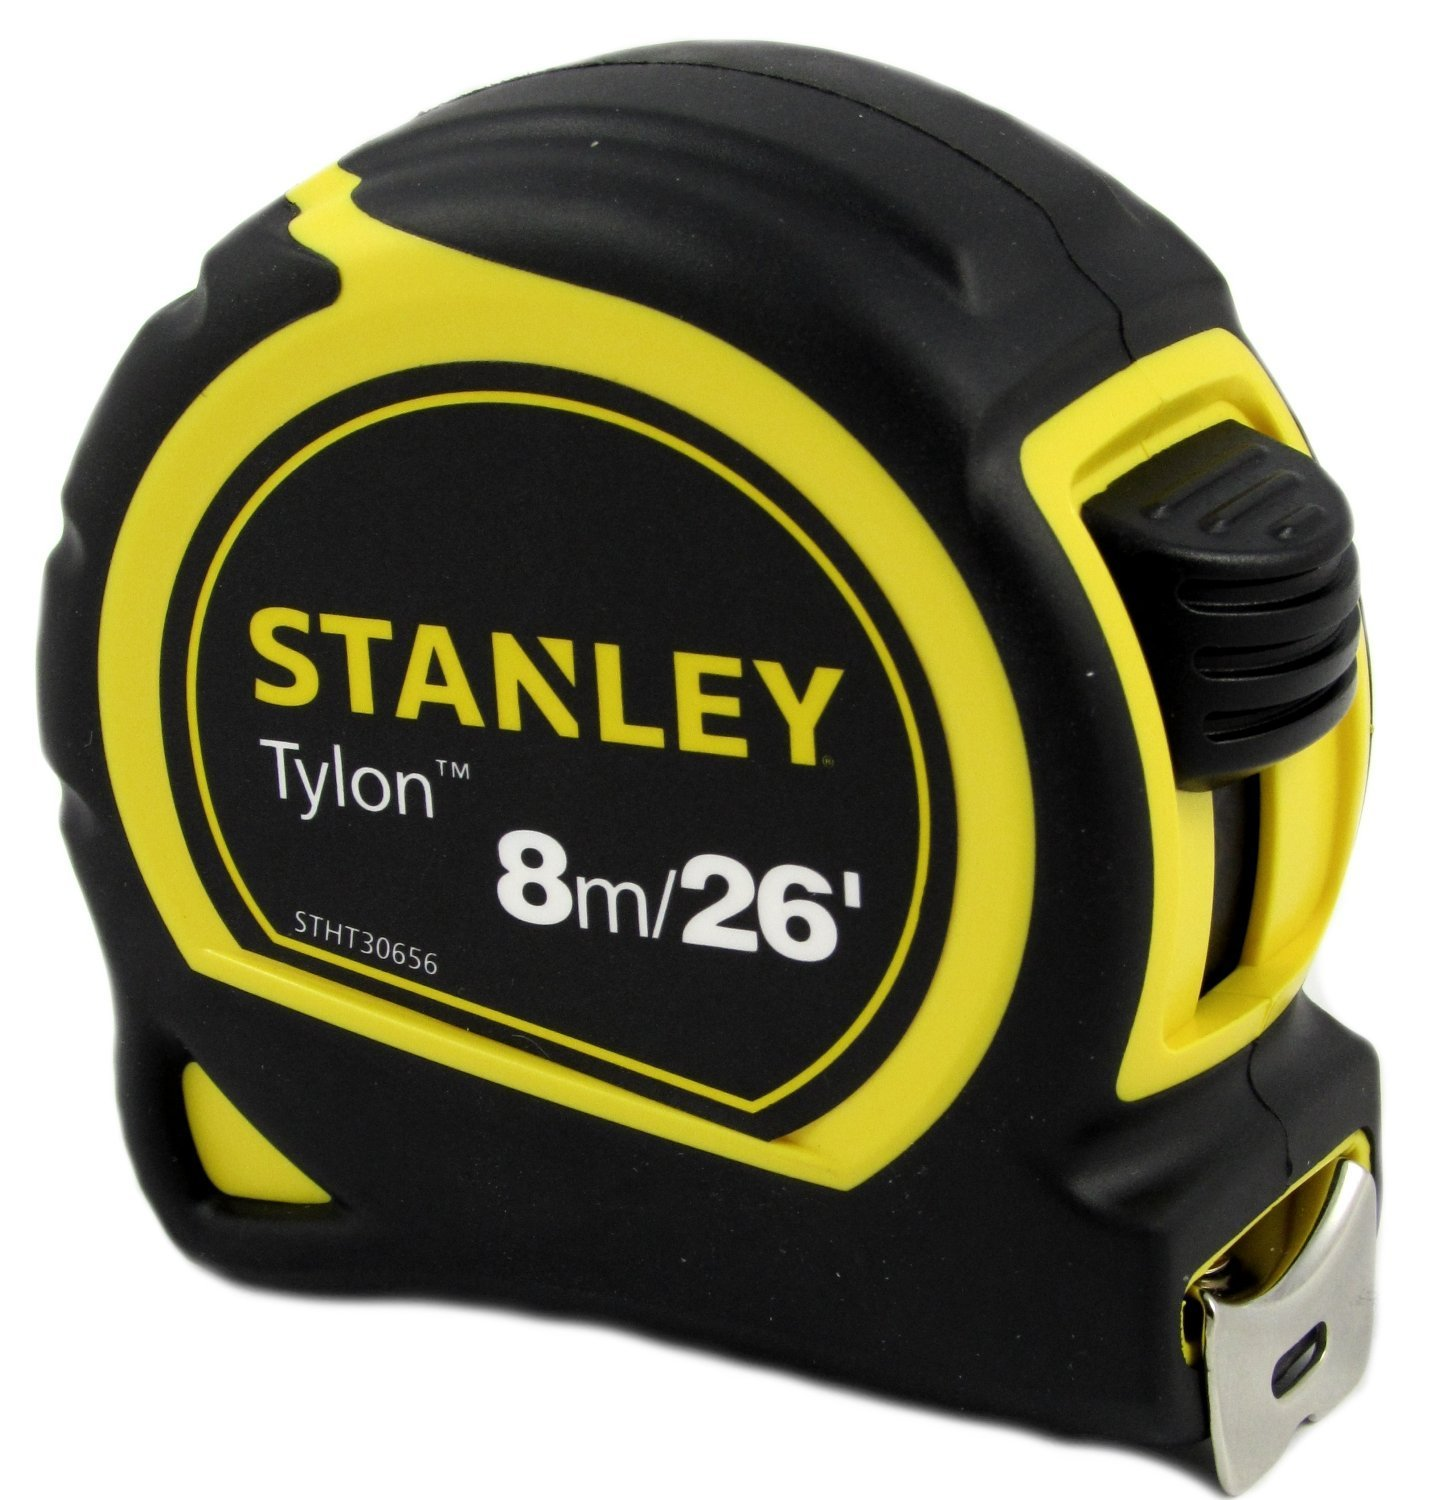 Stanley Tylon 8m/26' Measuring Tape by Stanley